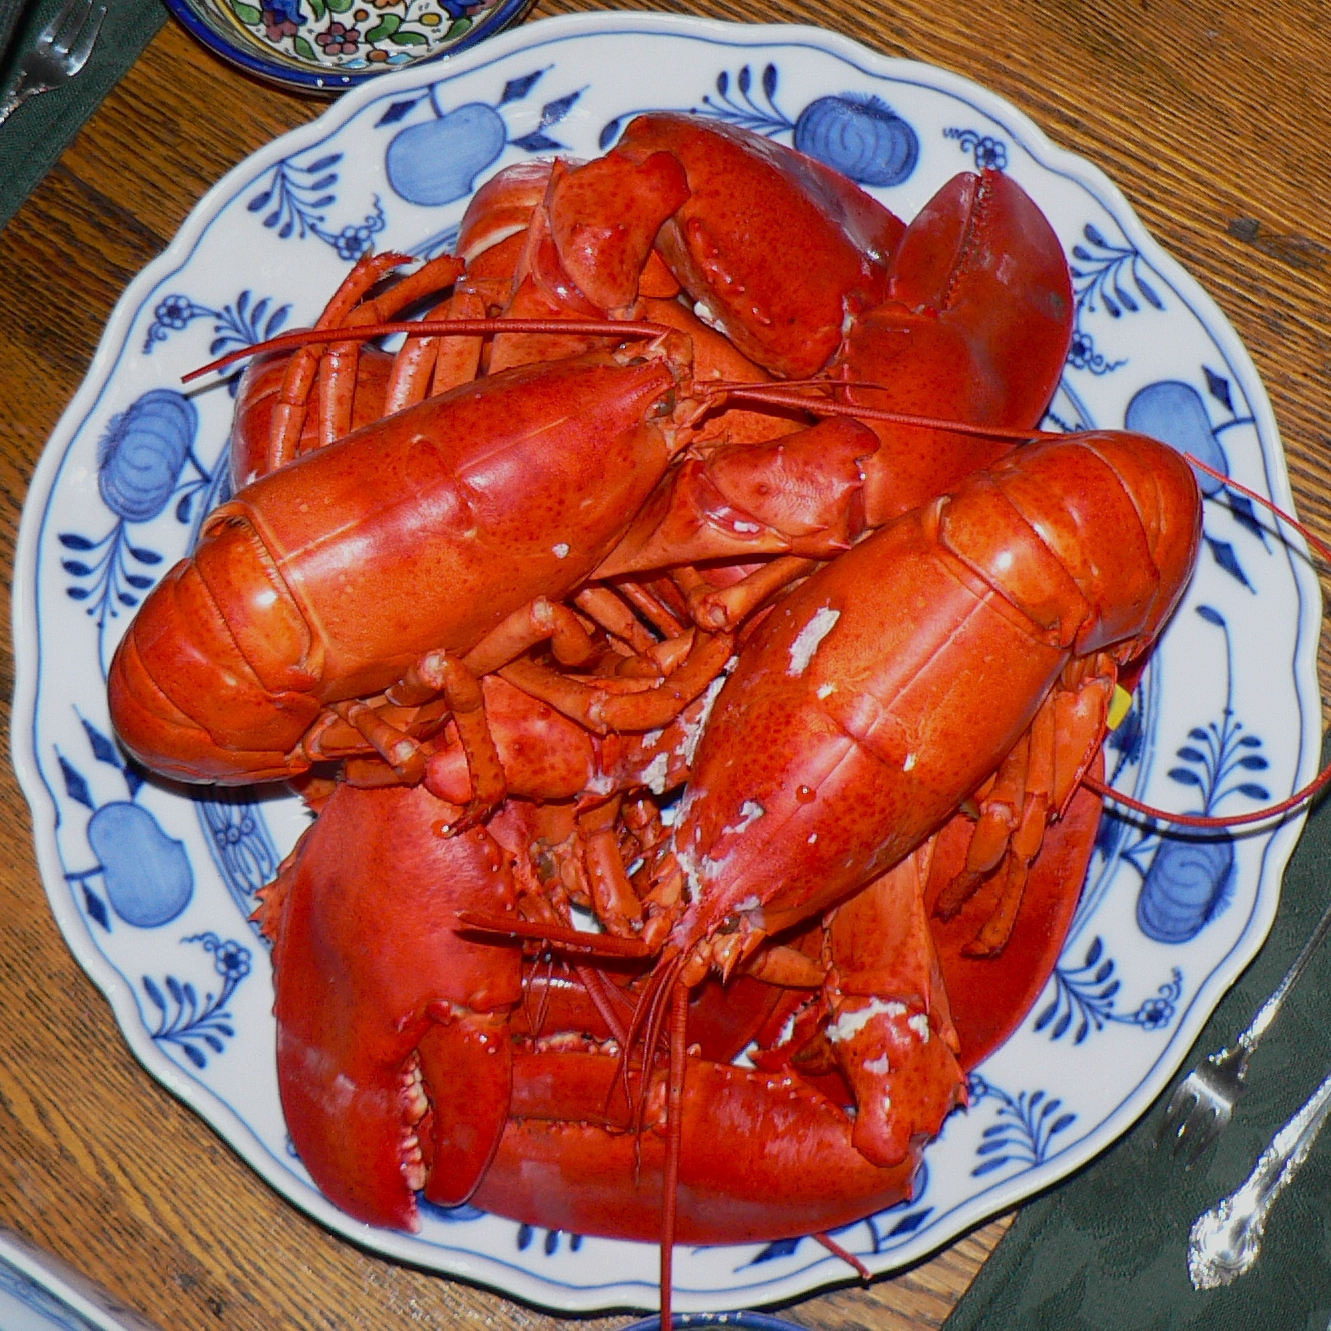 Boiled_Maine_Lobster.jpg#Boiled%20lobster%201331x1331